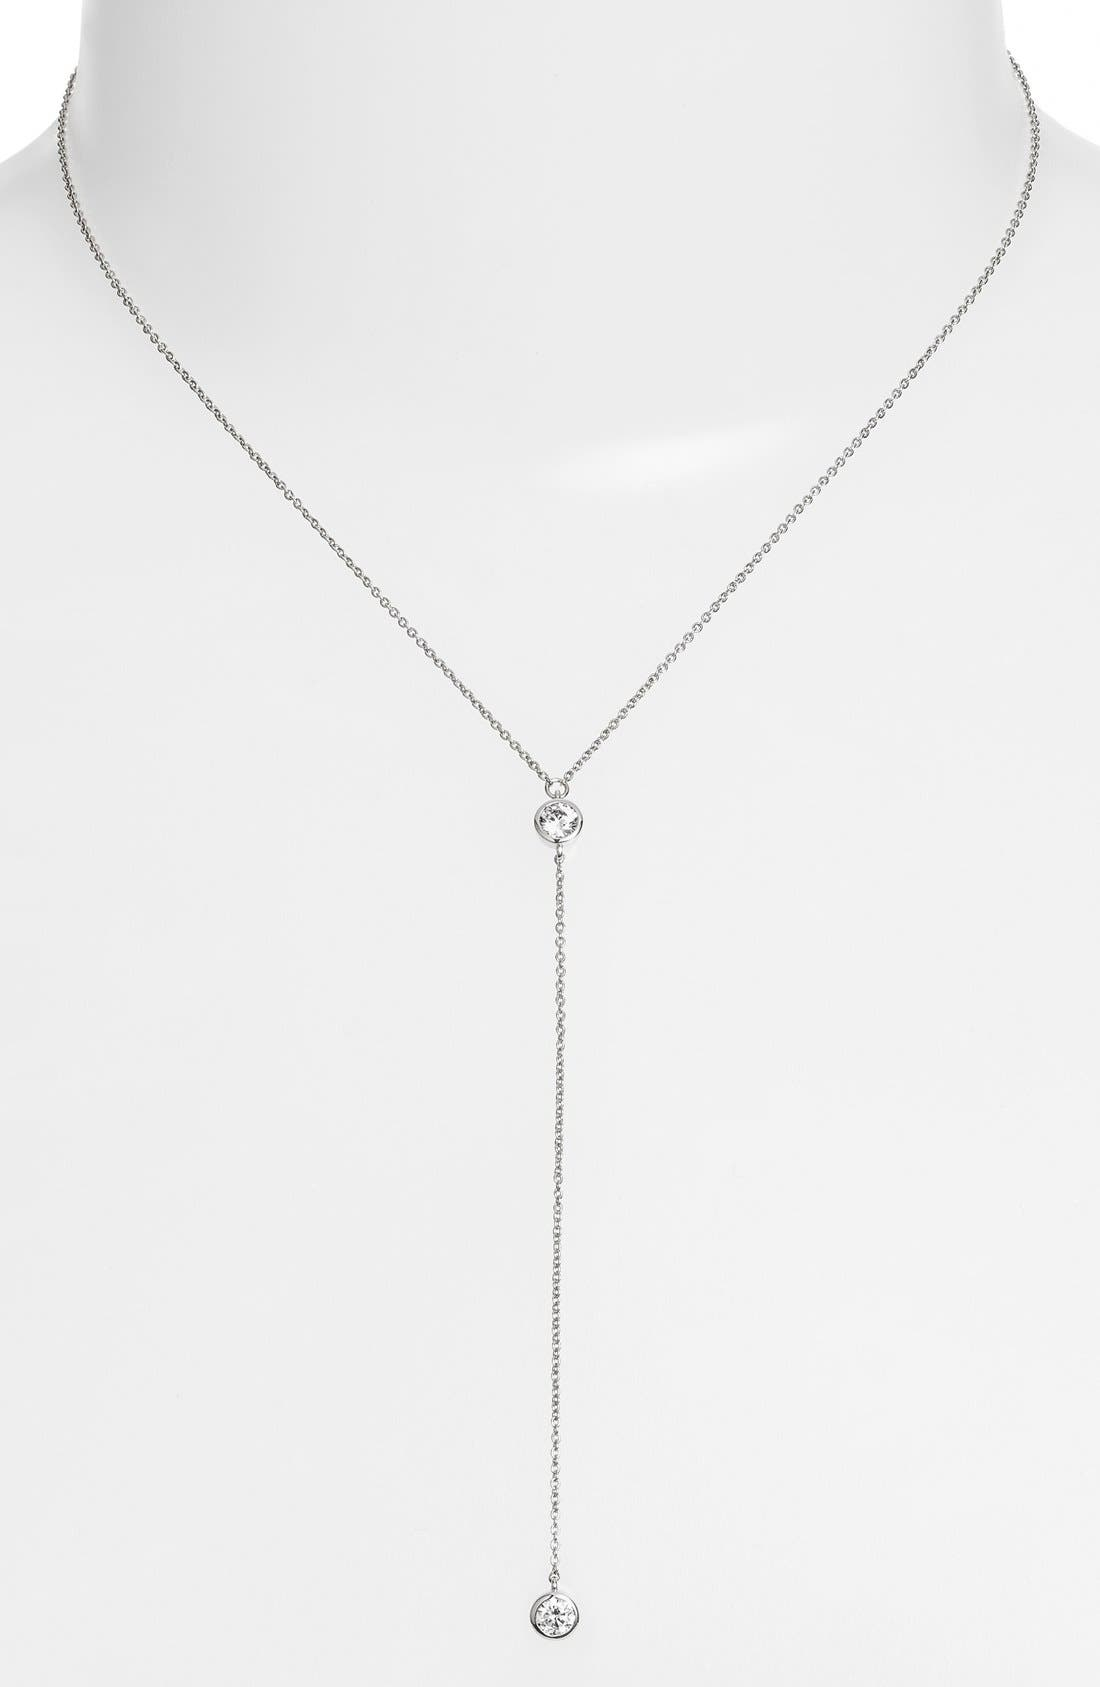 Alternate Image 1 Selected - Alainn Cubic Zirconia Lariat Necklace